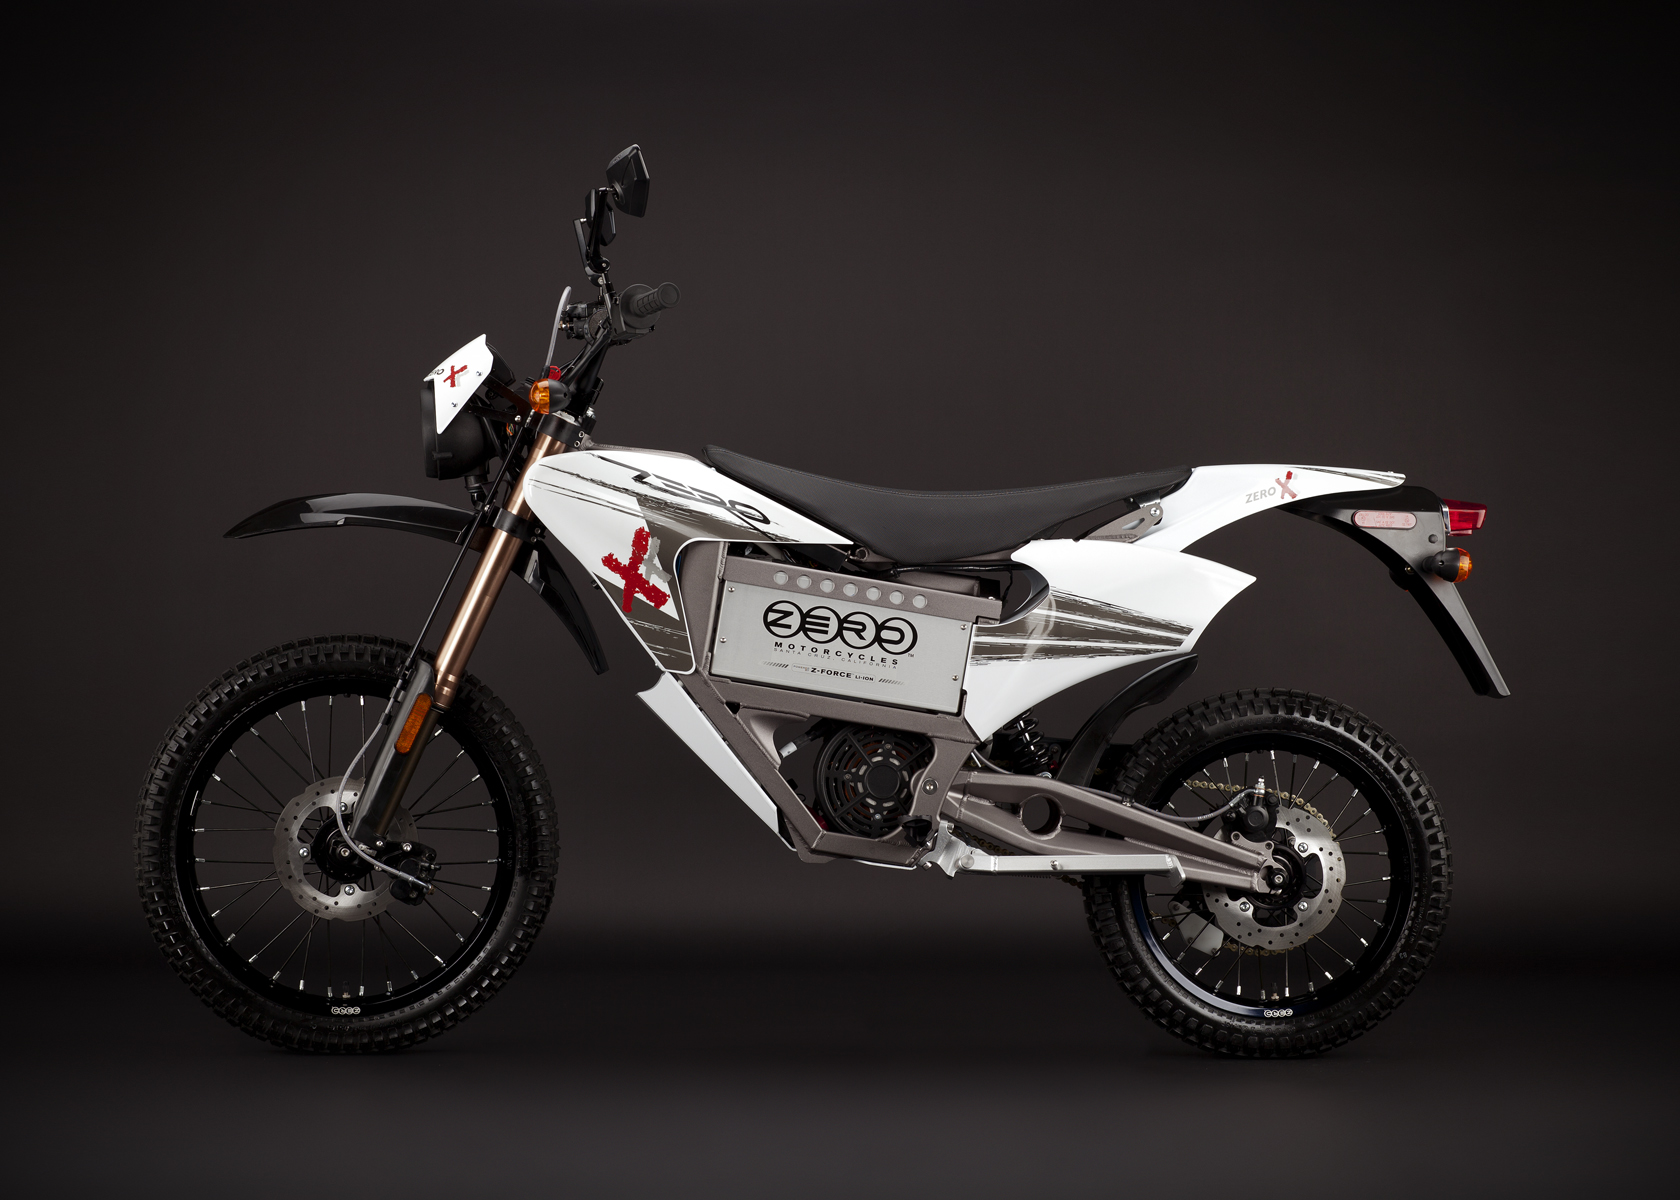 2011 Zero X Electric Motorcycle: Profile Left, Street Legal Model